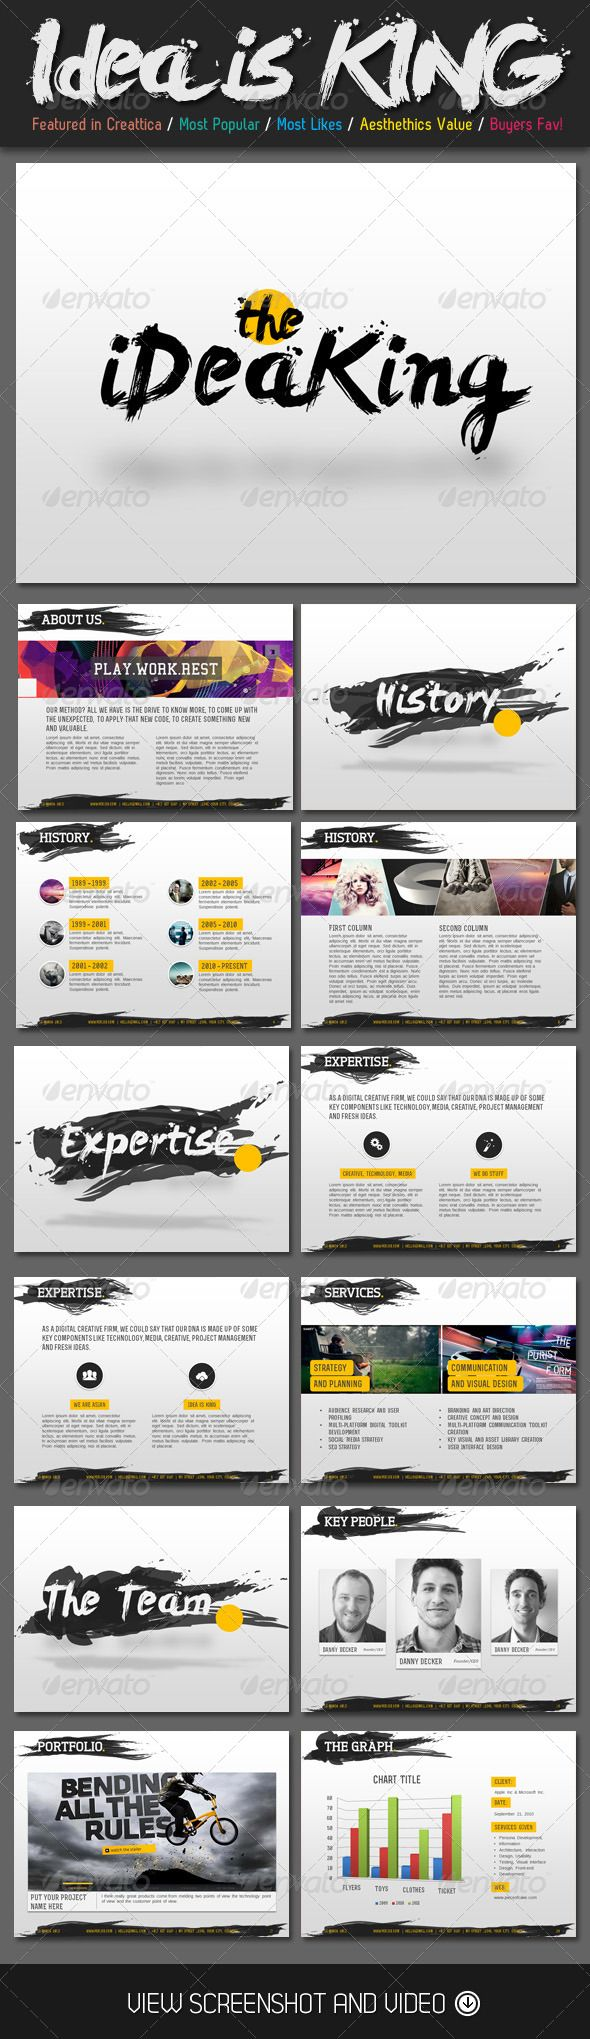 Ideas is King Creative PowerPoint Template